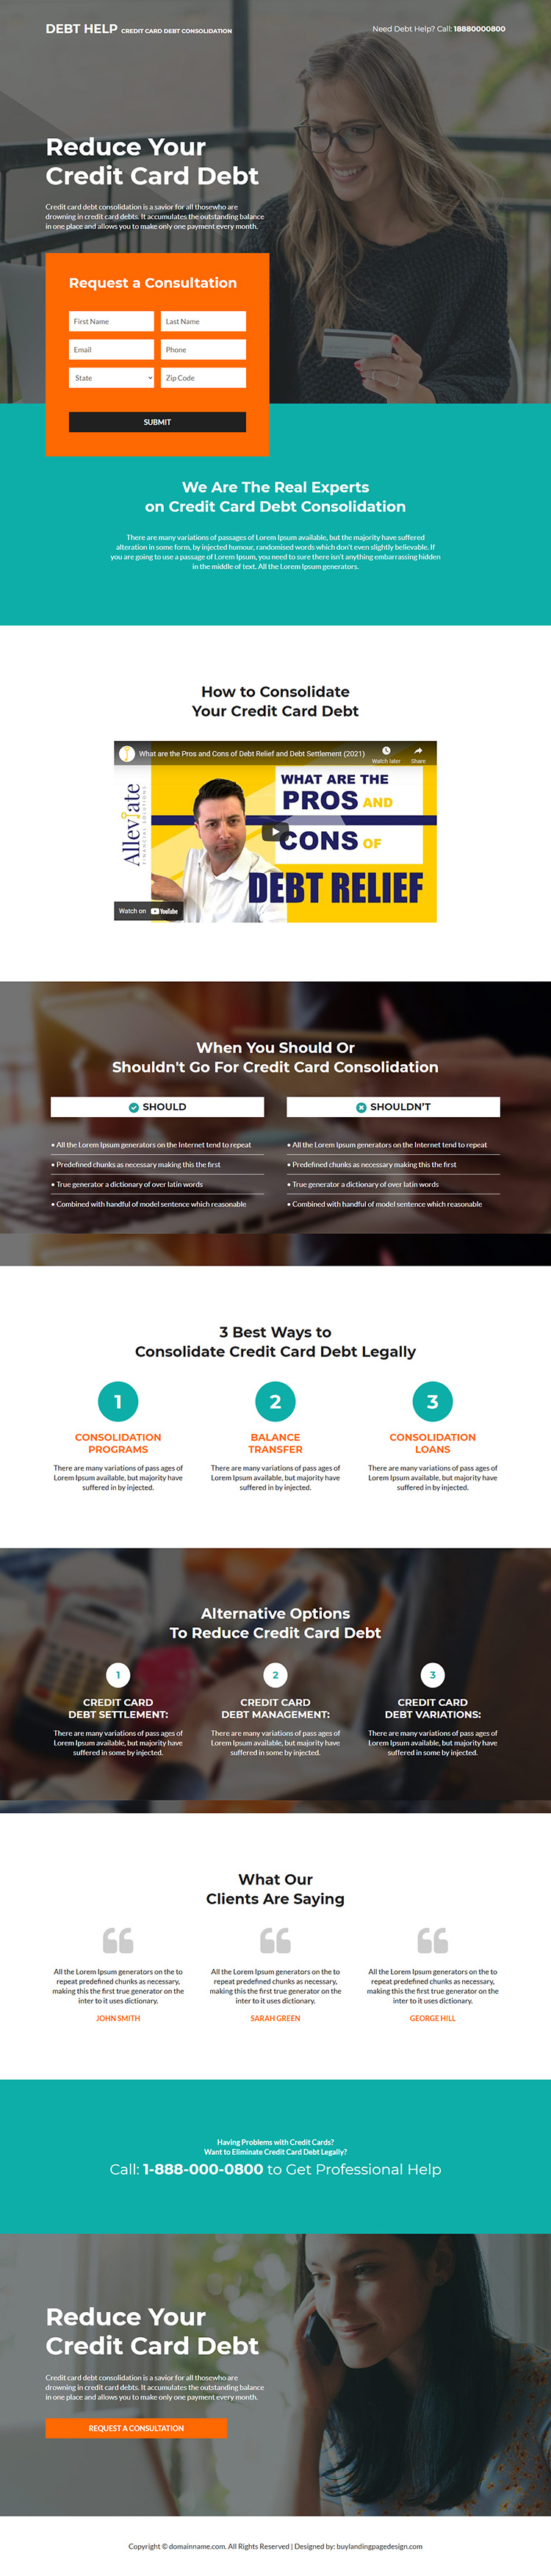 credit card debt consolidation responsive landing page